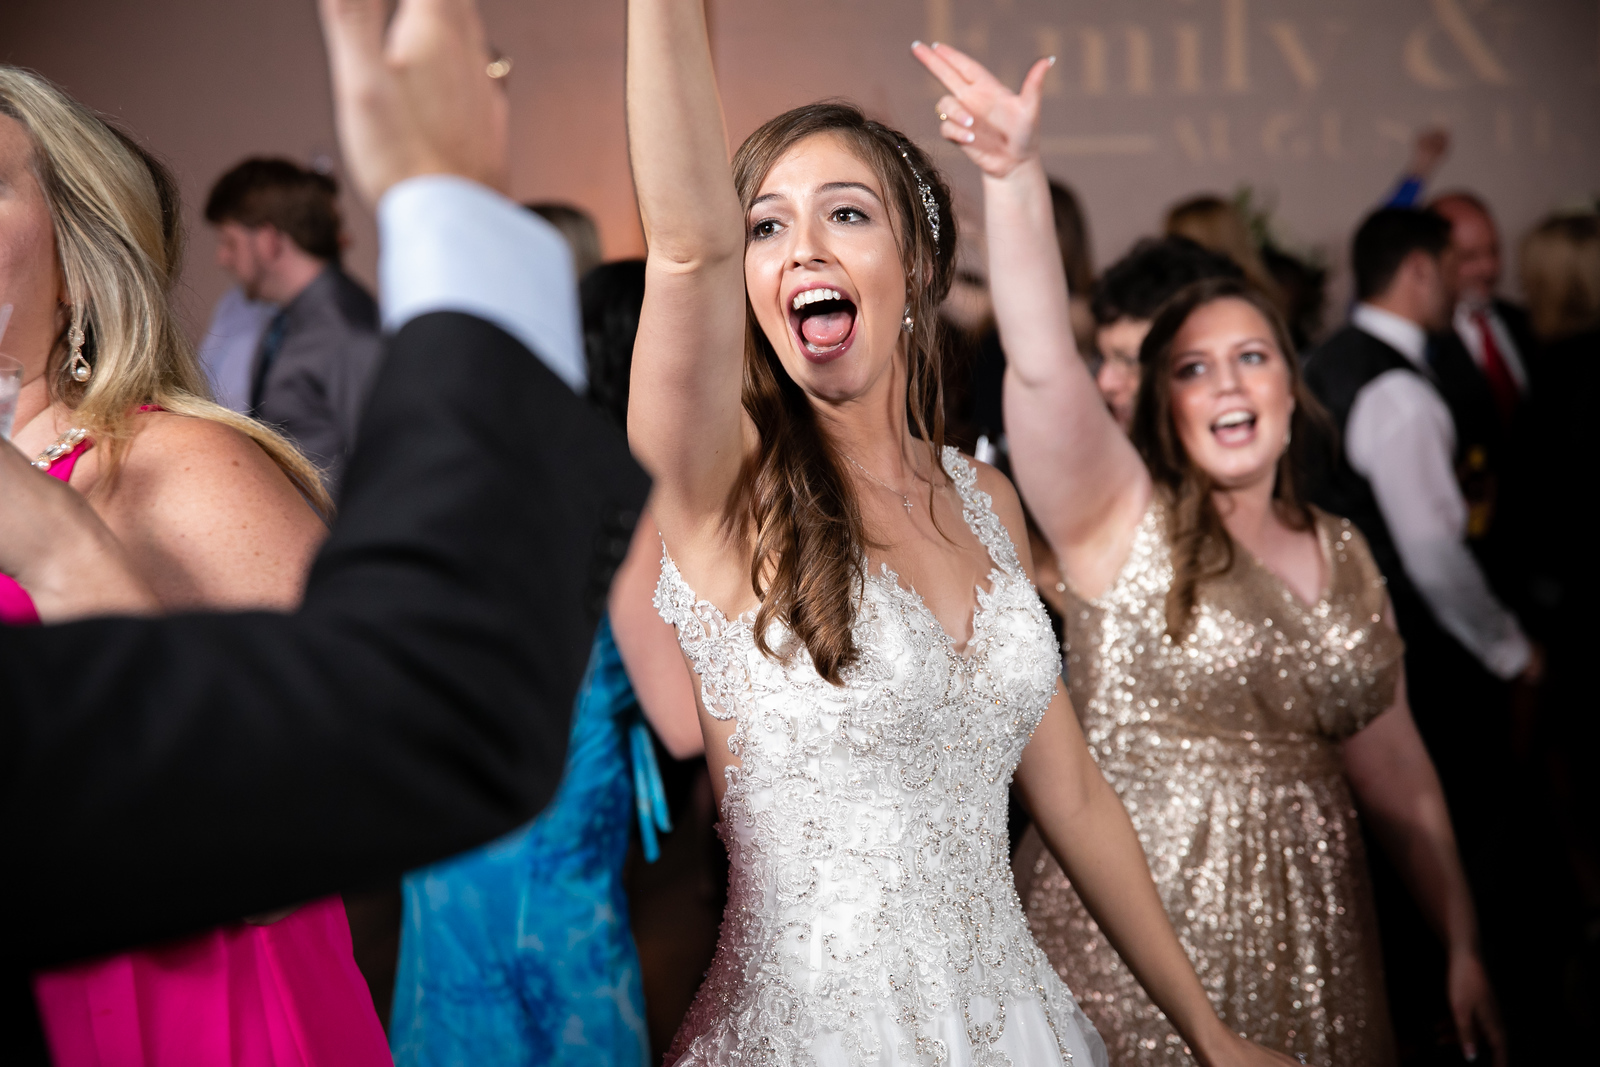 a bride smiling and dancing at her wedding surrounded by friends and family on the dancefloor